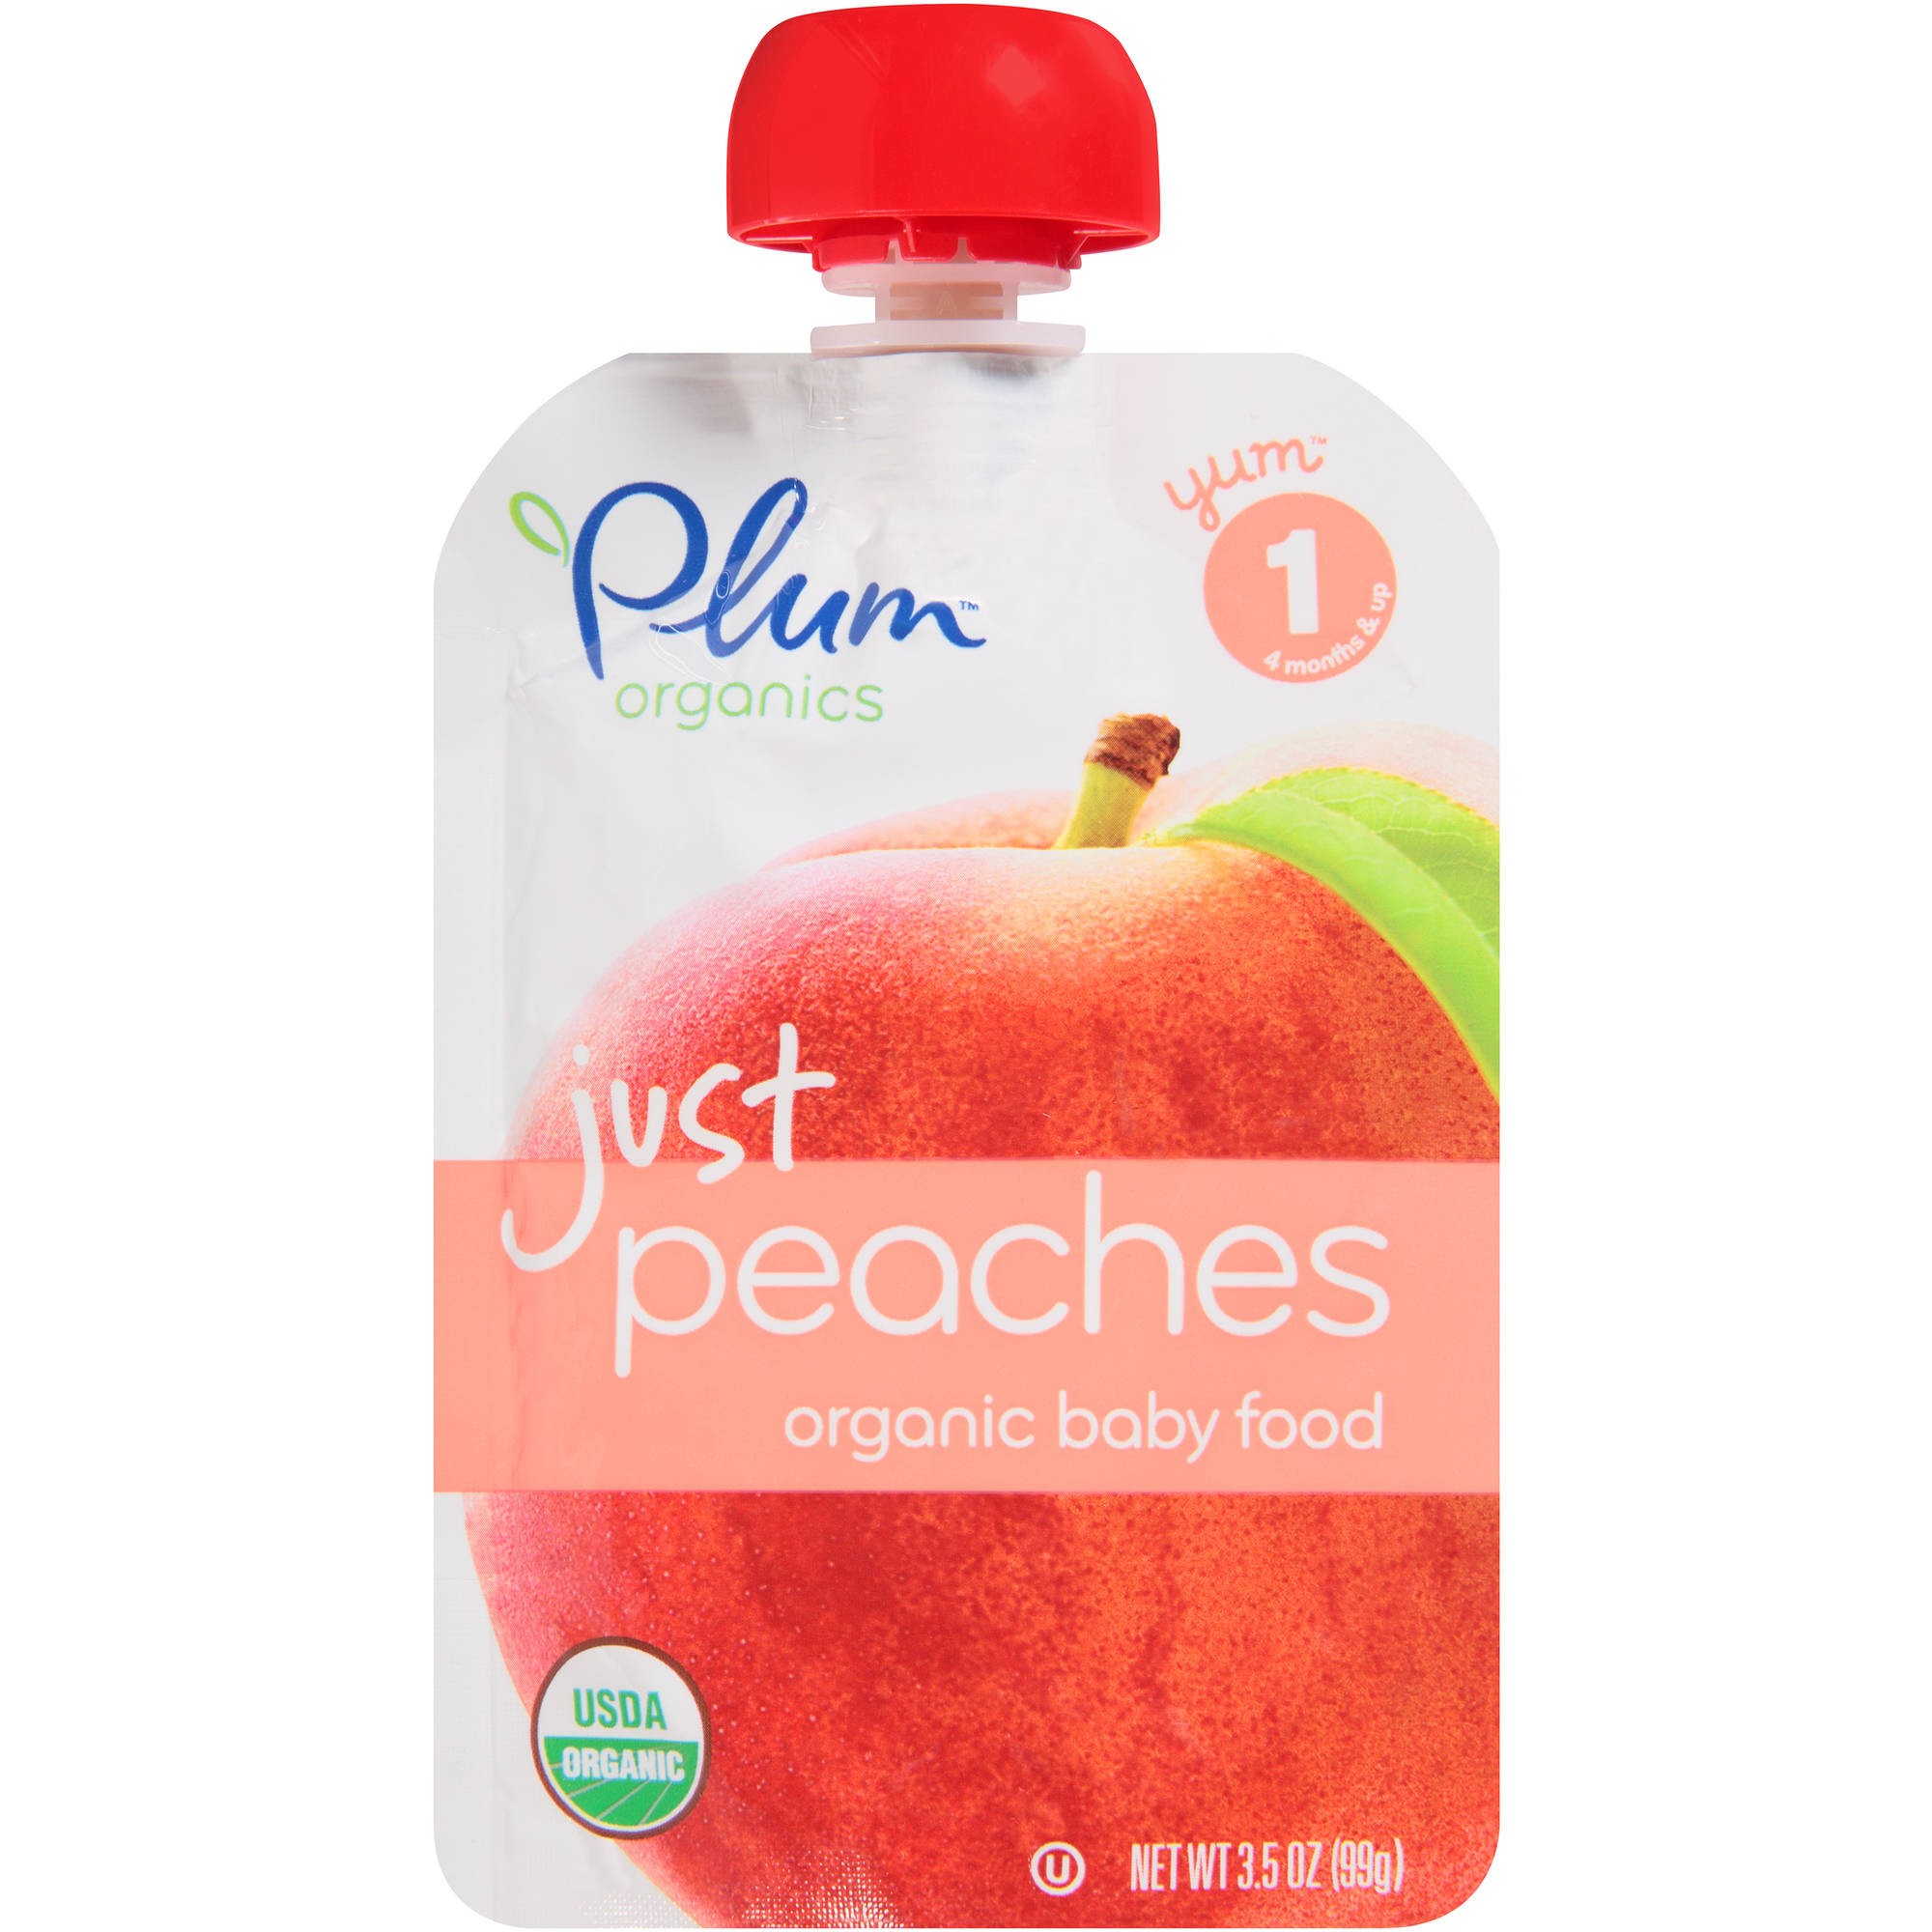 Plum Organics Just Peaches Stage 1 Organic Baby Food, 3.5 oz, (Pack of 12)